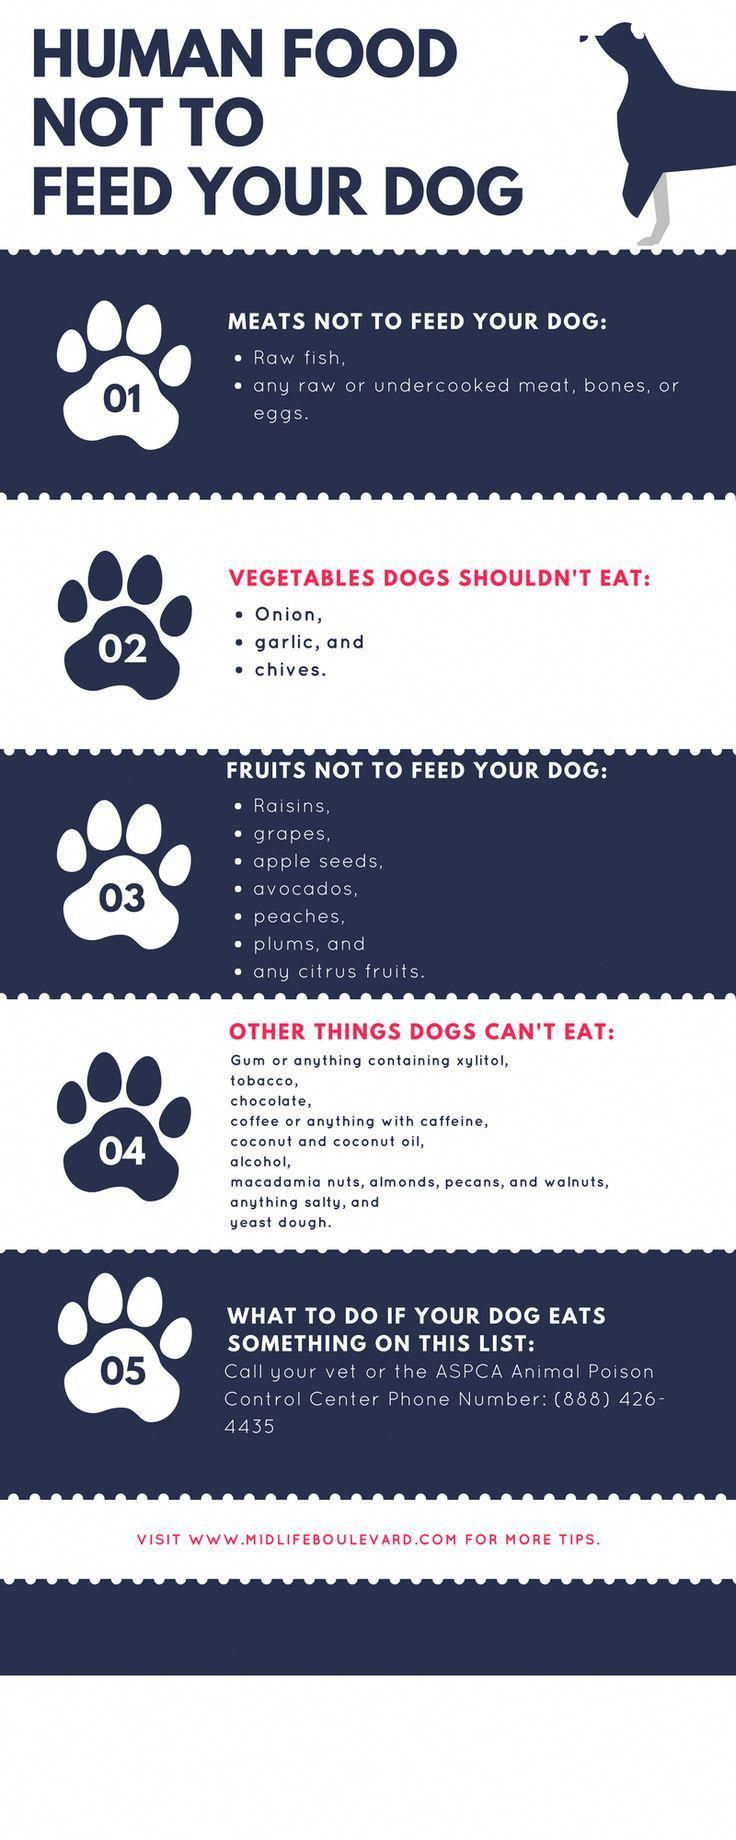 Human food you must absolutely not feed your dog. Pet